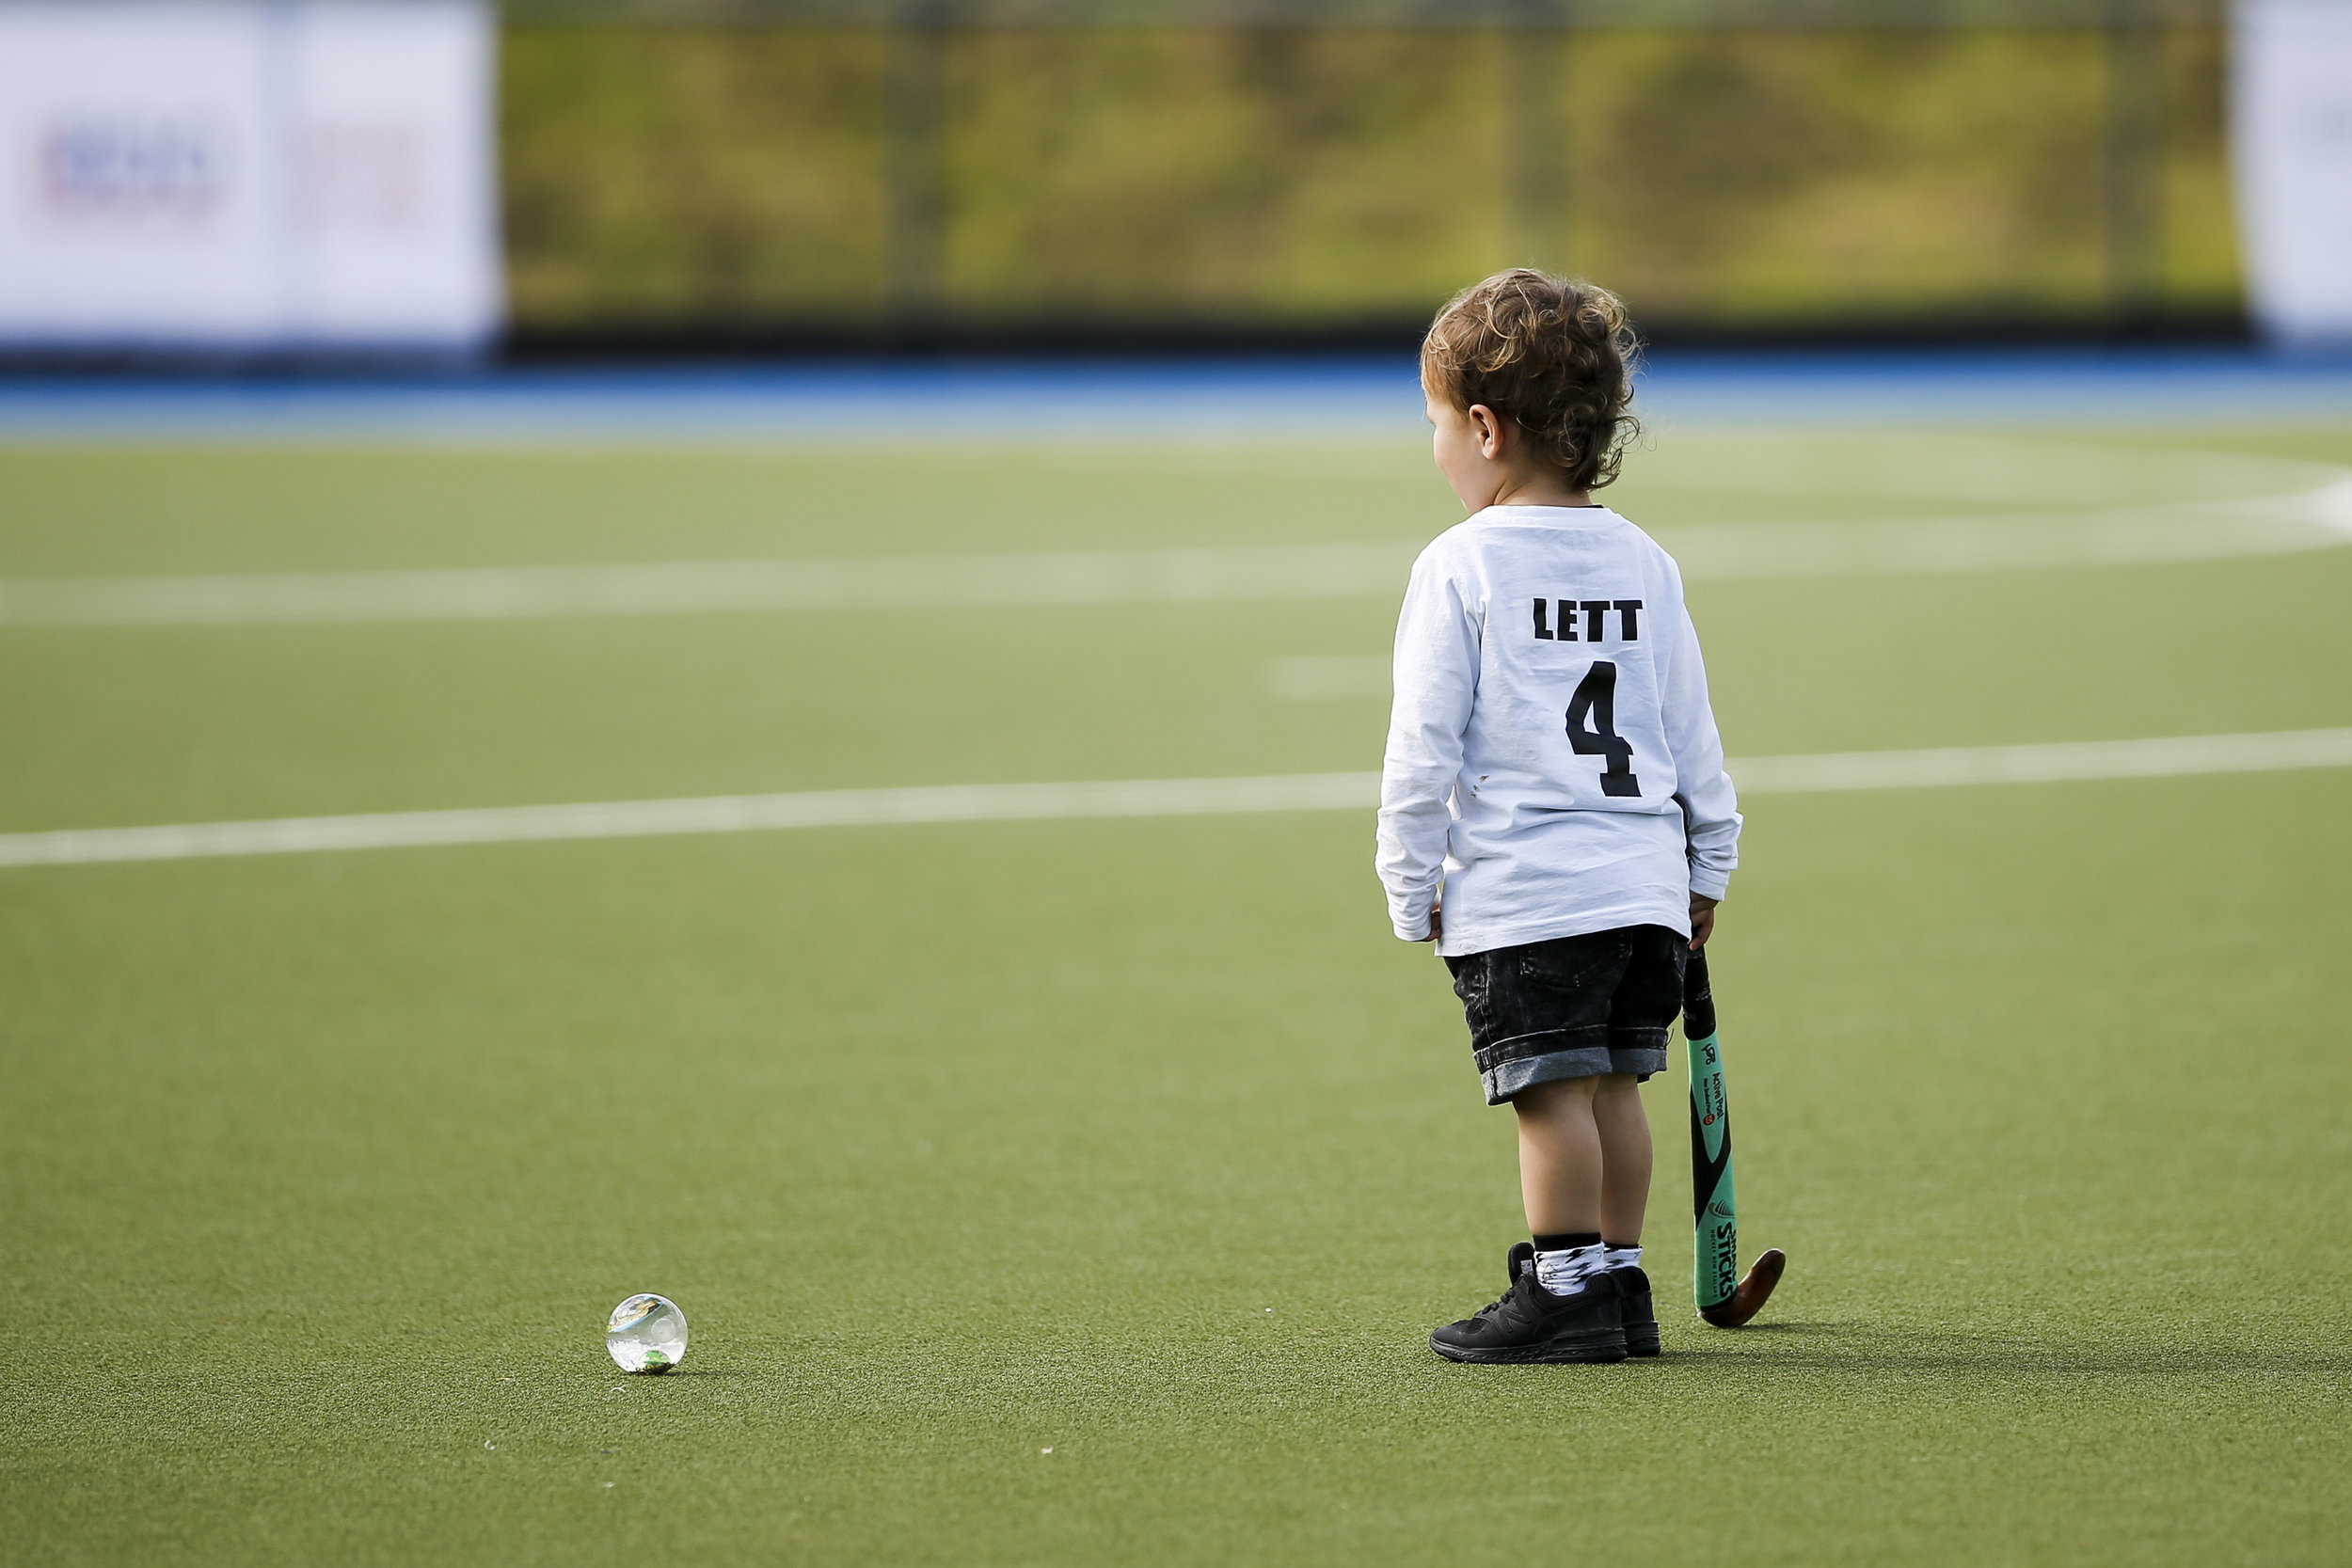 Dane Lett's son has a run on the turf at the final game of the Black Sticks v Canada Test Matches 21 October 2018. Copyright photo: Alisha Lovrich / www.photosport.nz